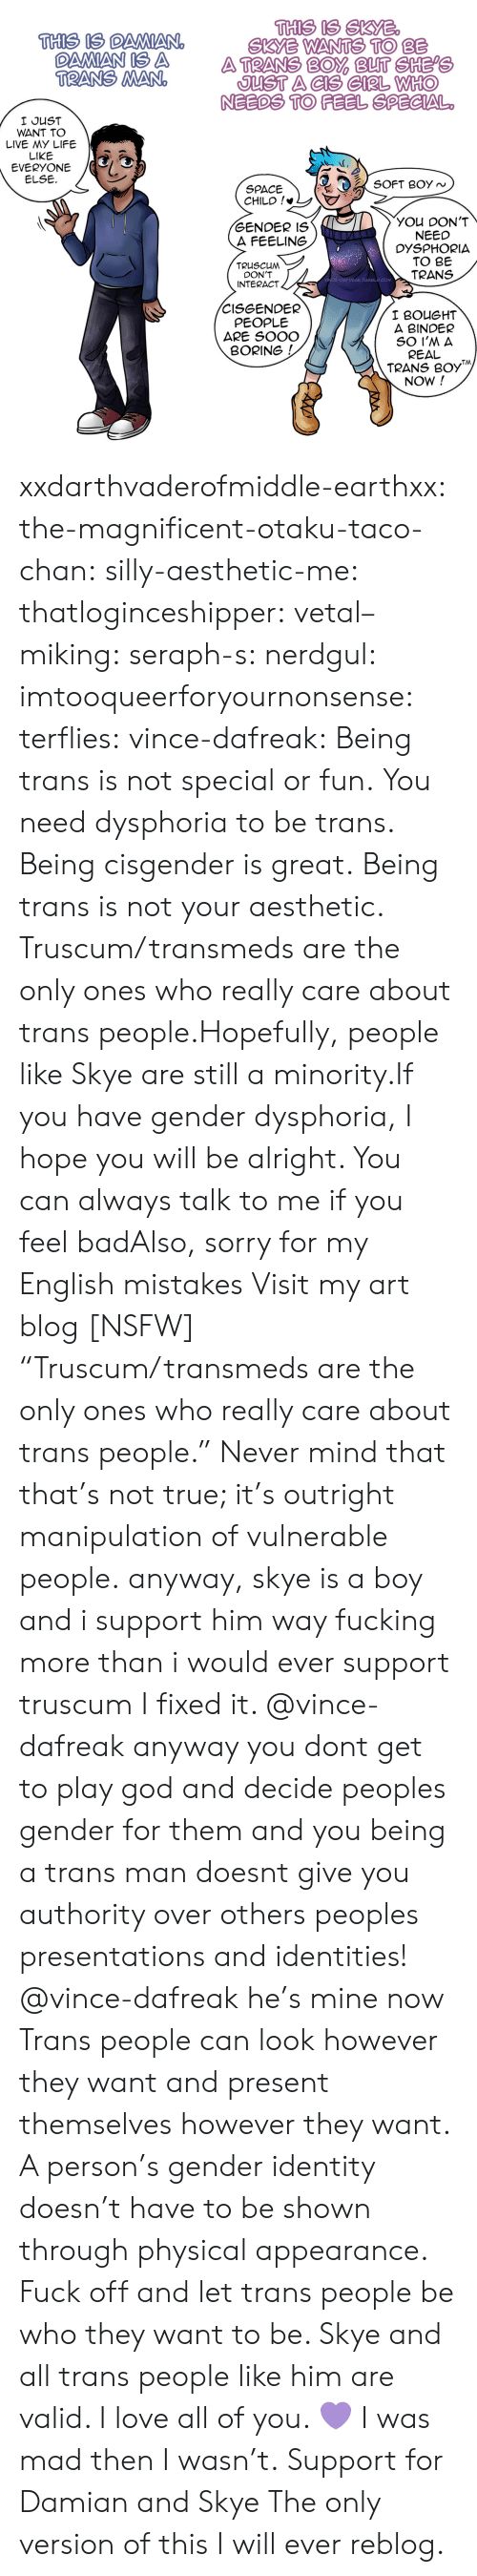 "otaku: THIS IS SKYB  SKYE WANTS TO BE  THIS IS DAMIANO  OAMAN IS A ATRANS BO BUT CHEPe  TRANS MAN  JUST A CIS GIRL WHHO  NEEDS TO FEEL SPECIAL  I JUST  WANT TO  LIVE MY LIFE  LIKE  EVERYONE /G  ELSE  SPACE  CHILD !*  YOU DON'T  NEED  DYSPHORIA  TO BE  TRANS  GENDER IS  A FEELING  TRUSCUM  DON'T  INTERACT  -DAFREAK.TUMBLR.COM  CISGENDER  PEOPLE  ARE SOOO  I BOUGHT  A BINDER  BORING  REAL  TRANS B0y  NOW! xxdarthvaderofmiddle-earthxx:  the-magnificent-otaku-taco-chan:  silly-aesthetic-me:  thatloginceshipper:   vetal–miking:  seraph-s:  nerdgul:  imtooqueerforyournonsense:  terflies:   vince-dafreak:  Being trans is not special or fun. You need dysphoria to be trans. Being cisgender is great. Being trans is not your aesthetic. Truscum/transmeds are the only ones who really care about trans people.Hopefully, people like Skye are still a minority.If you have gender dysphoria, I hope you will be alright. You can always talk to me if you feel badAlso, sorry for my English mistakes  Visit my art blog [NSFW]    ""Truscum/transmeds are the only ones who really care about trans people."" Never mind that that's not true; it's outright manipulation of vulnerable people.   anyway, skye is a boy and i support him way fucking more than i would ever support truscum  I fixed it.   @vince-dafreak anyway you dont get to play god and decide peoples gender for them and you being a trans man doesnt give you authority over others peoples presentations and identities!   @vince-dafreak he's mine now   Trans people can look however they want and present themselves however they want. A person's gender identity doesn't have to be shown through physical appearance. Fuck off and let trans people be who they want to be. Skye and all trans people like him are valid. I love all of you. 💜   I was mad then I wasn't.  Support for Damian and Skye  The only version of this I will ever reblog."